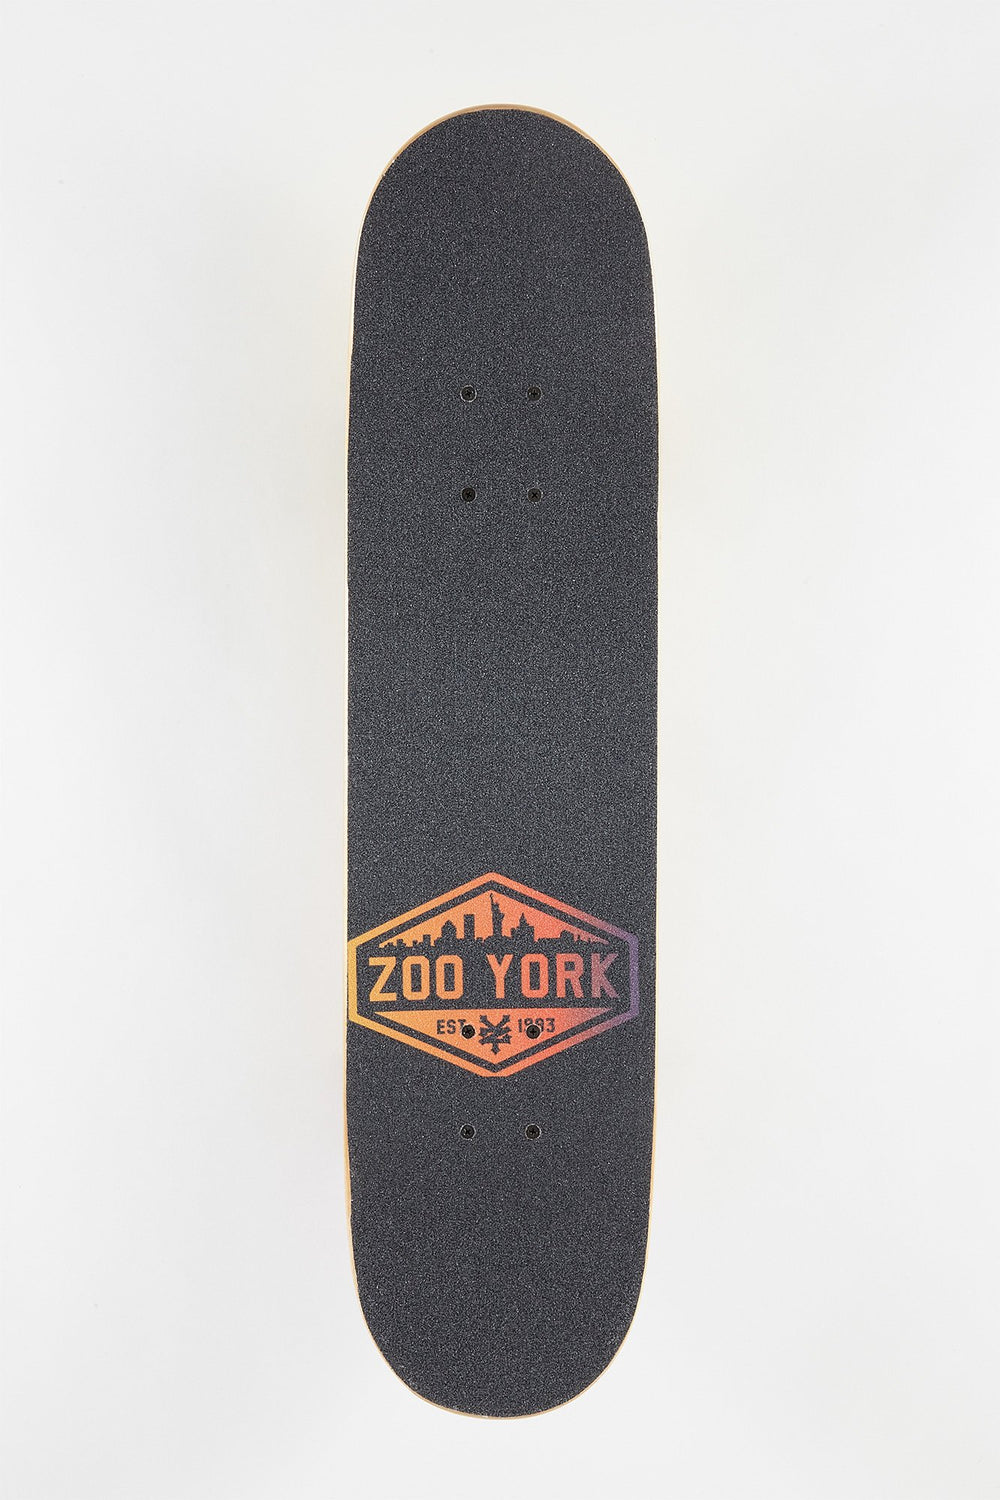 Zoo York Gradient Hexagon Skateboard - 7.75